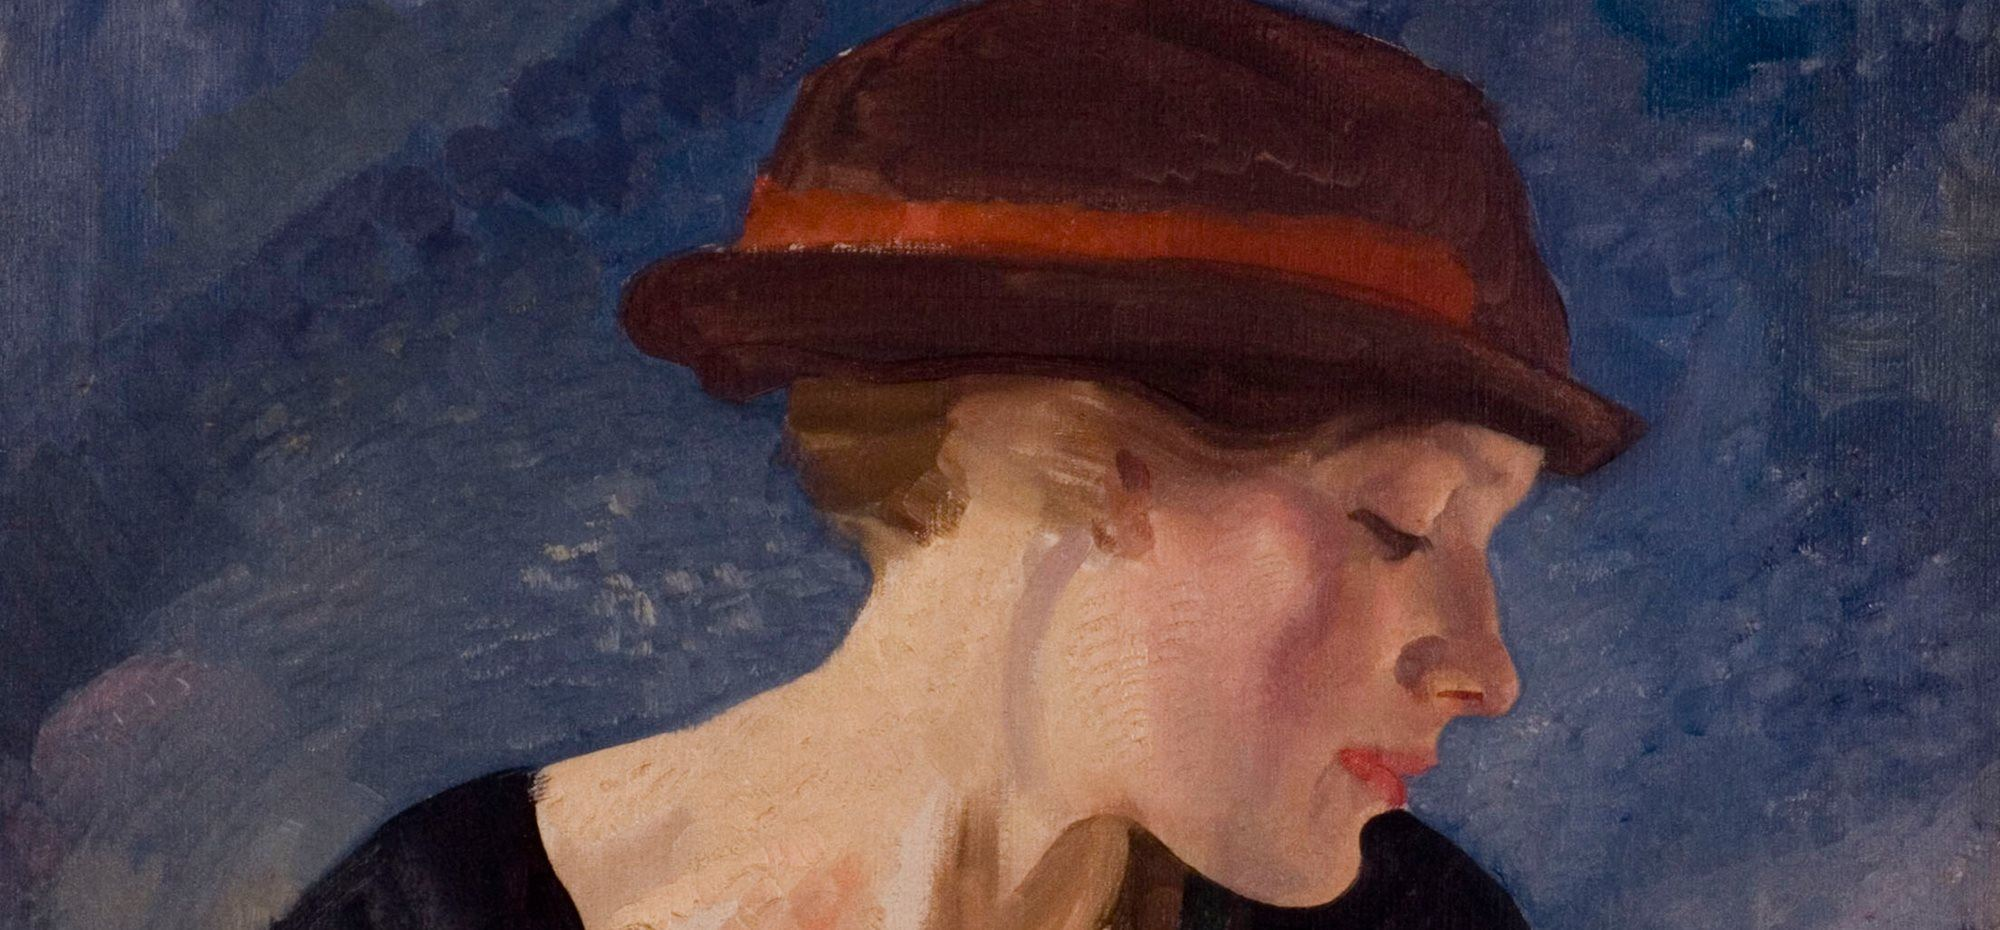 George W LAMBERT Portrait: red trimmed hat c1921 (detail) oil on canvas 74.2 x 62.1cm Gift of Mrs Maurice Lambert 1970 Newcastle Art Gallery collection